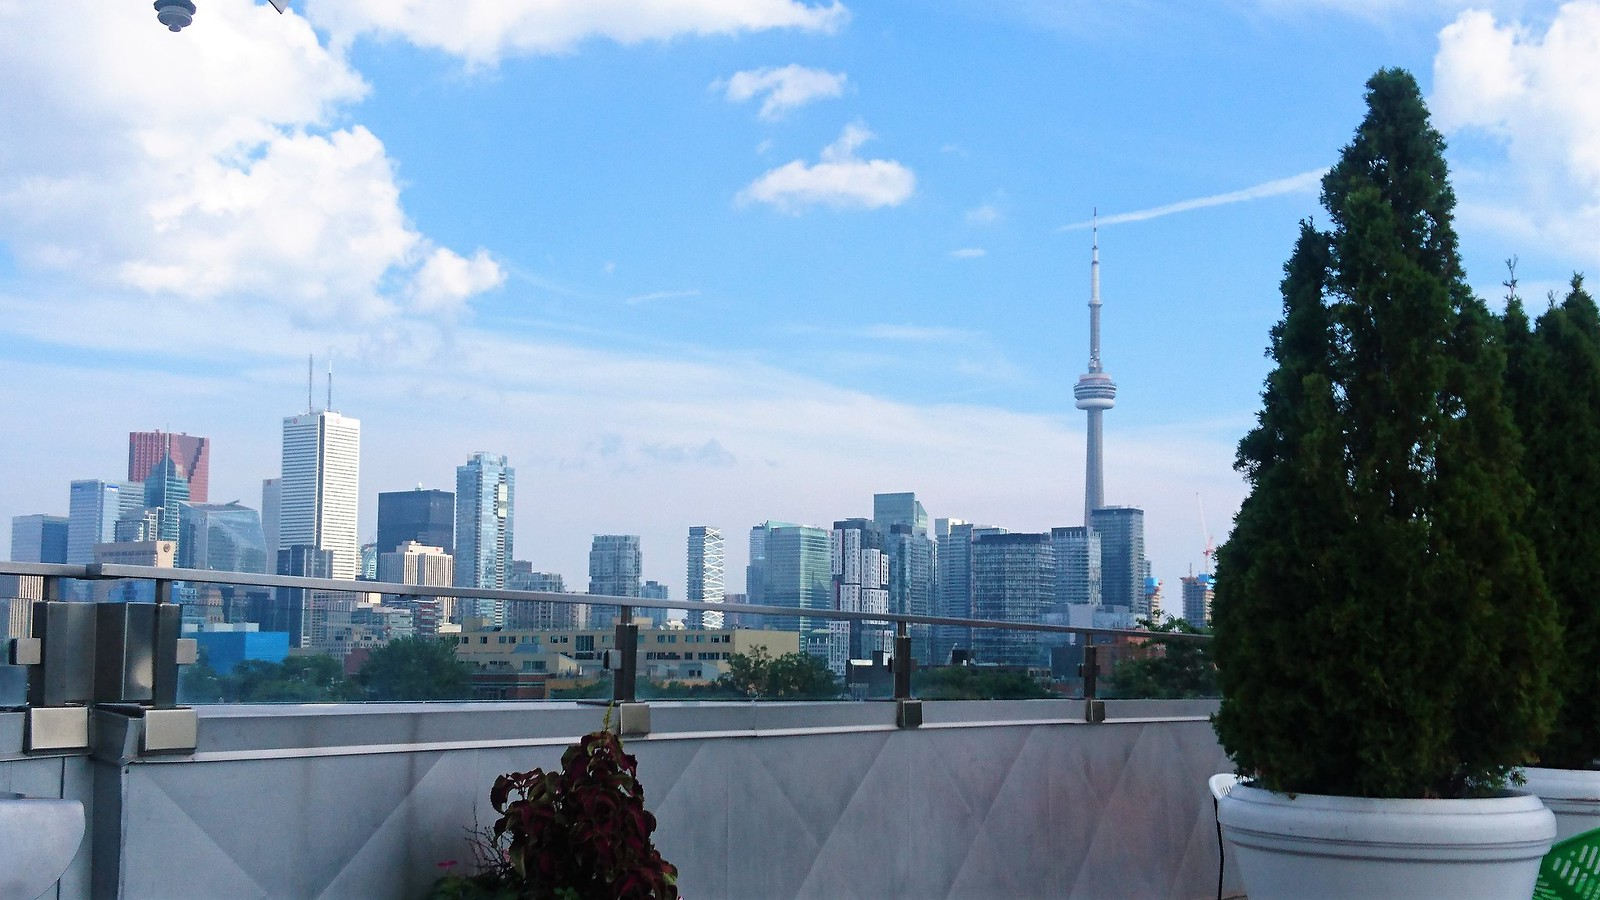 Our view of Toronto